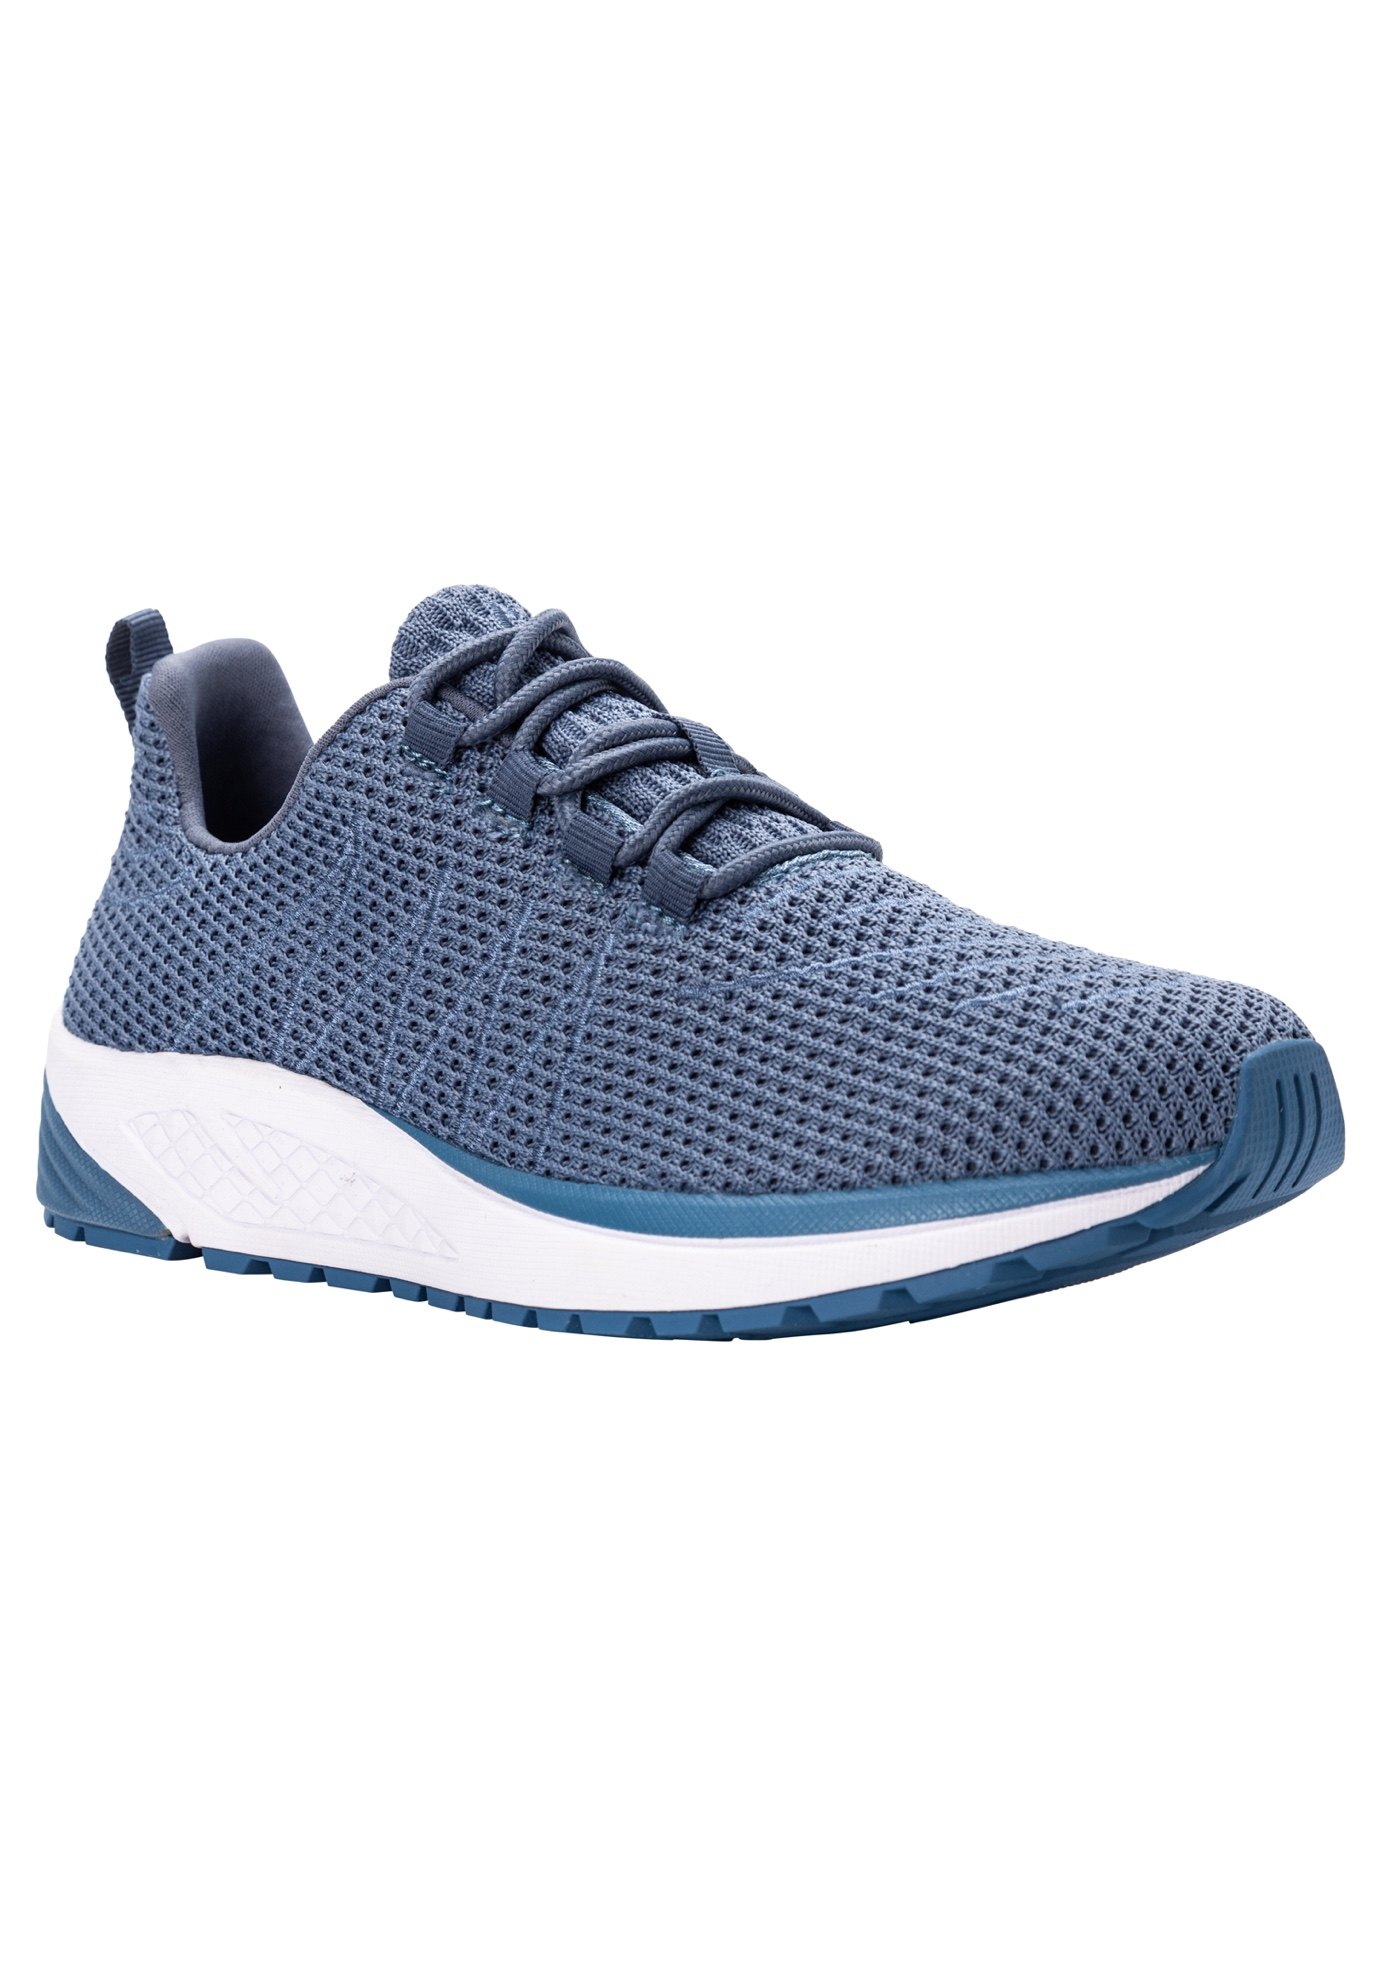 Tour Knit Running Shoe by Prophet,